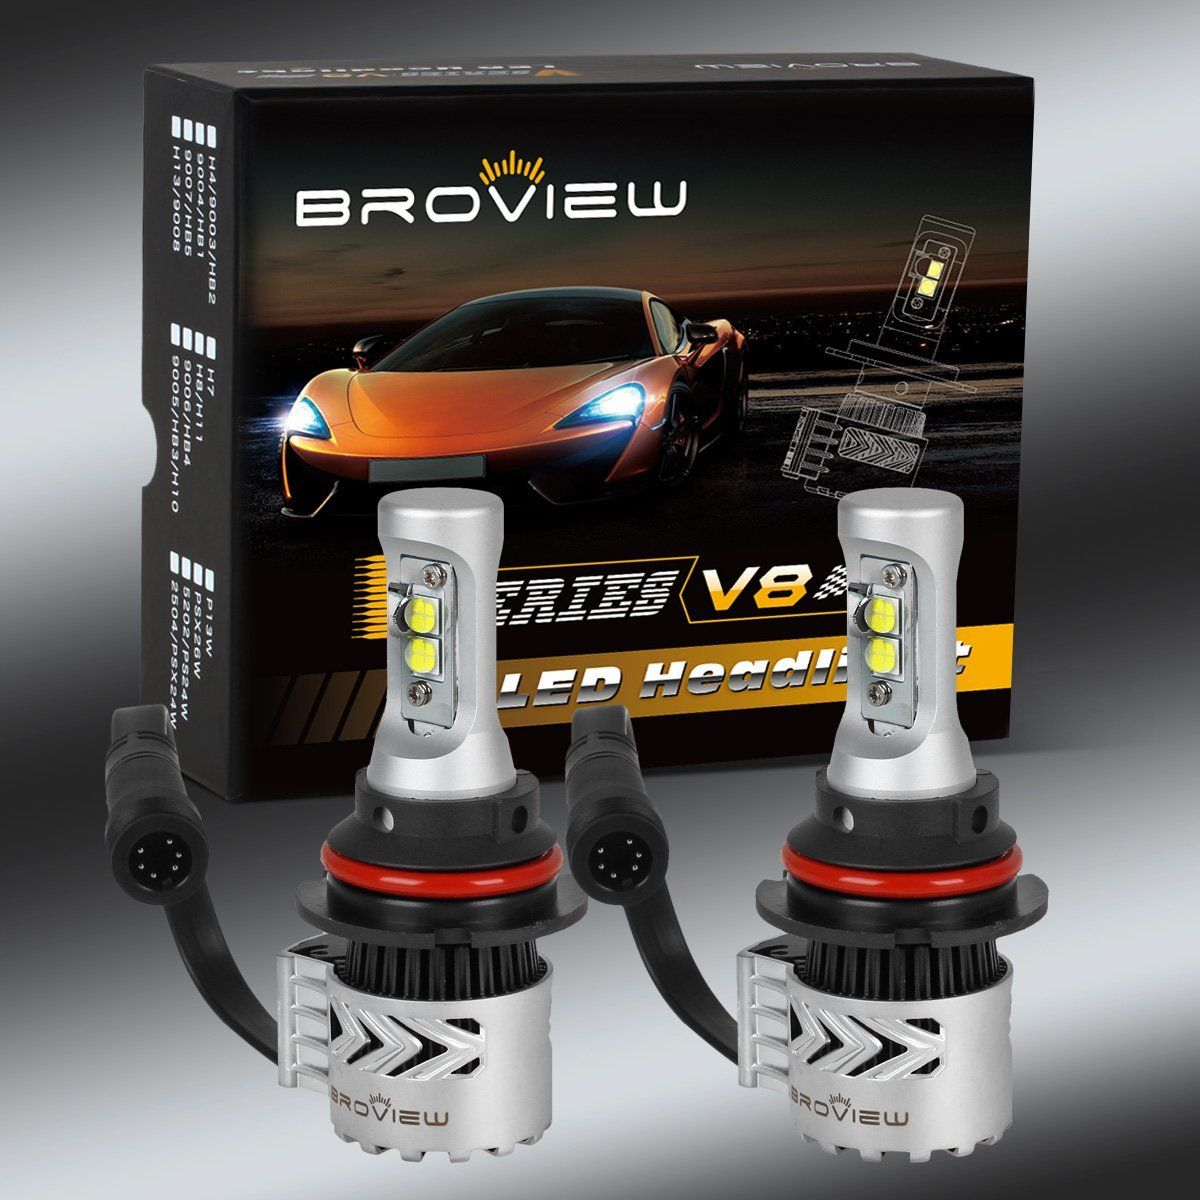 Broview V8 Led Headlight Bulbs Arc Beam Kit 72w 12 000lm 6500k 4 Cree Xhp50 Led Chip Led Headlights Headlight Bulbs Led